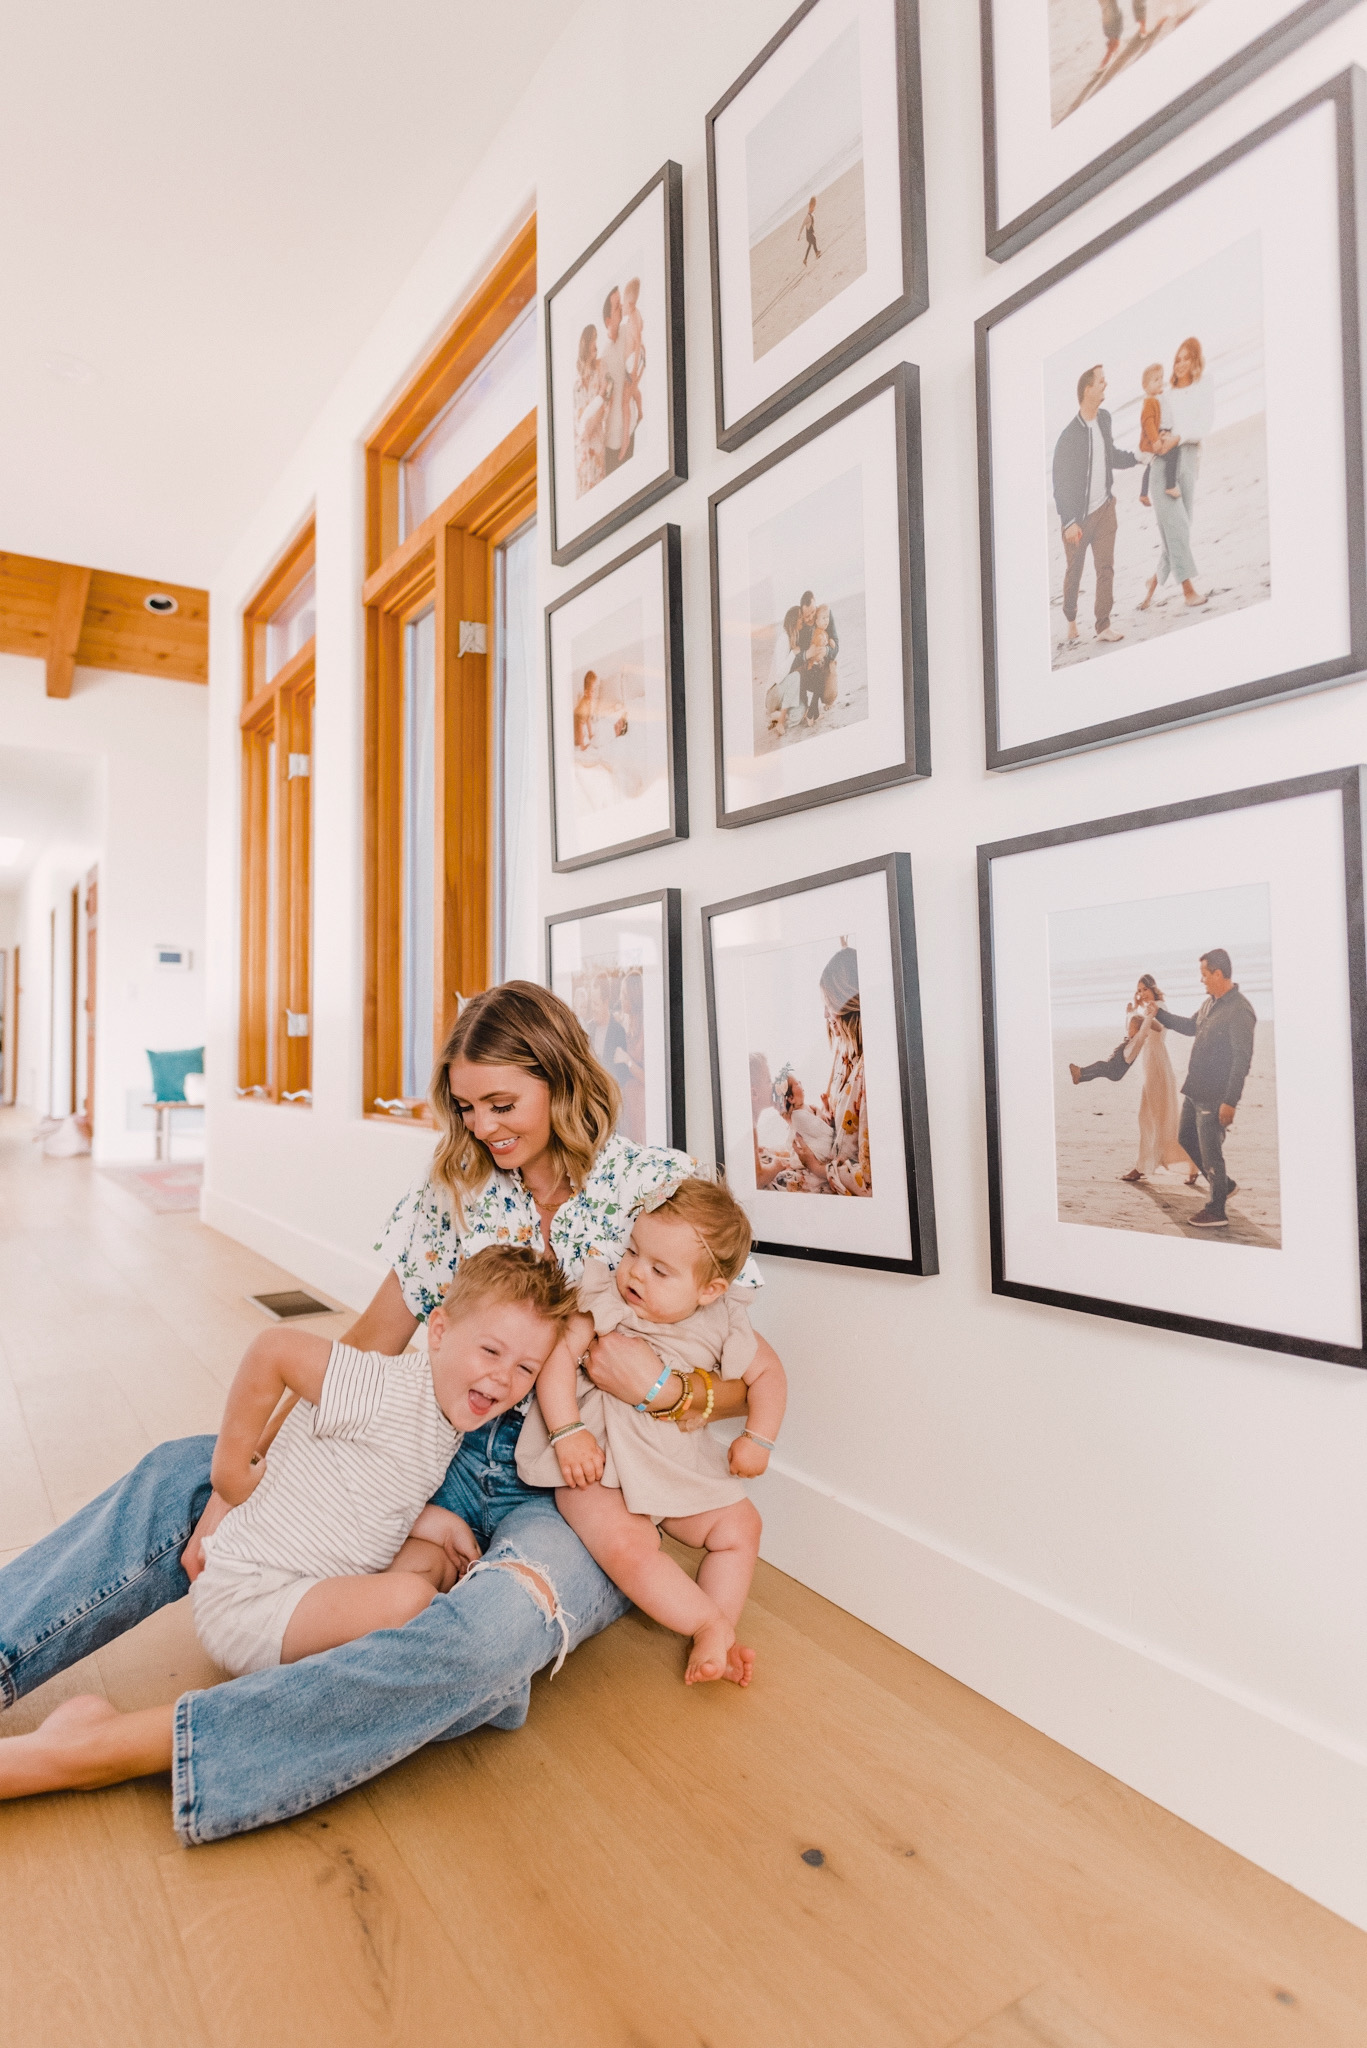 Frambridge Frames by popular San Diego life and style blog, Navy Grace: image of a mom and her two kids sitting int the hallway of their home next to a wall will a lot of Framebridge frames hung on it.